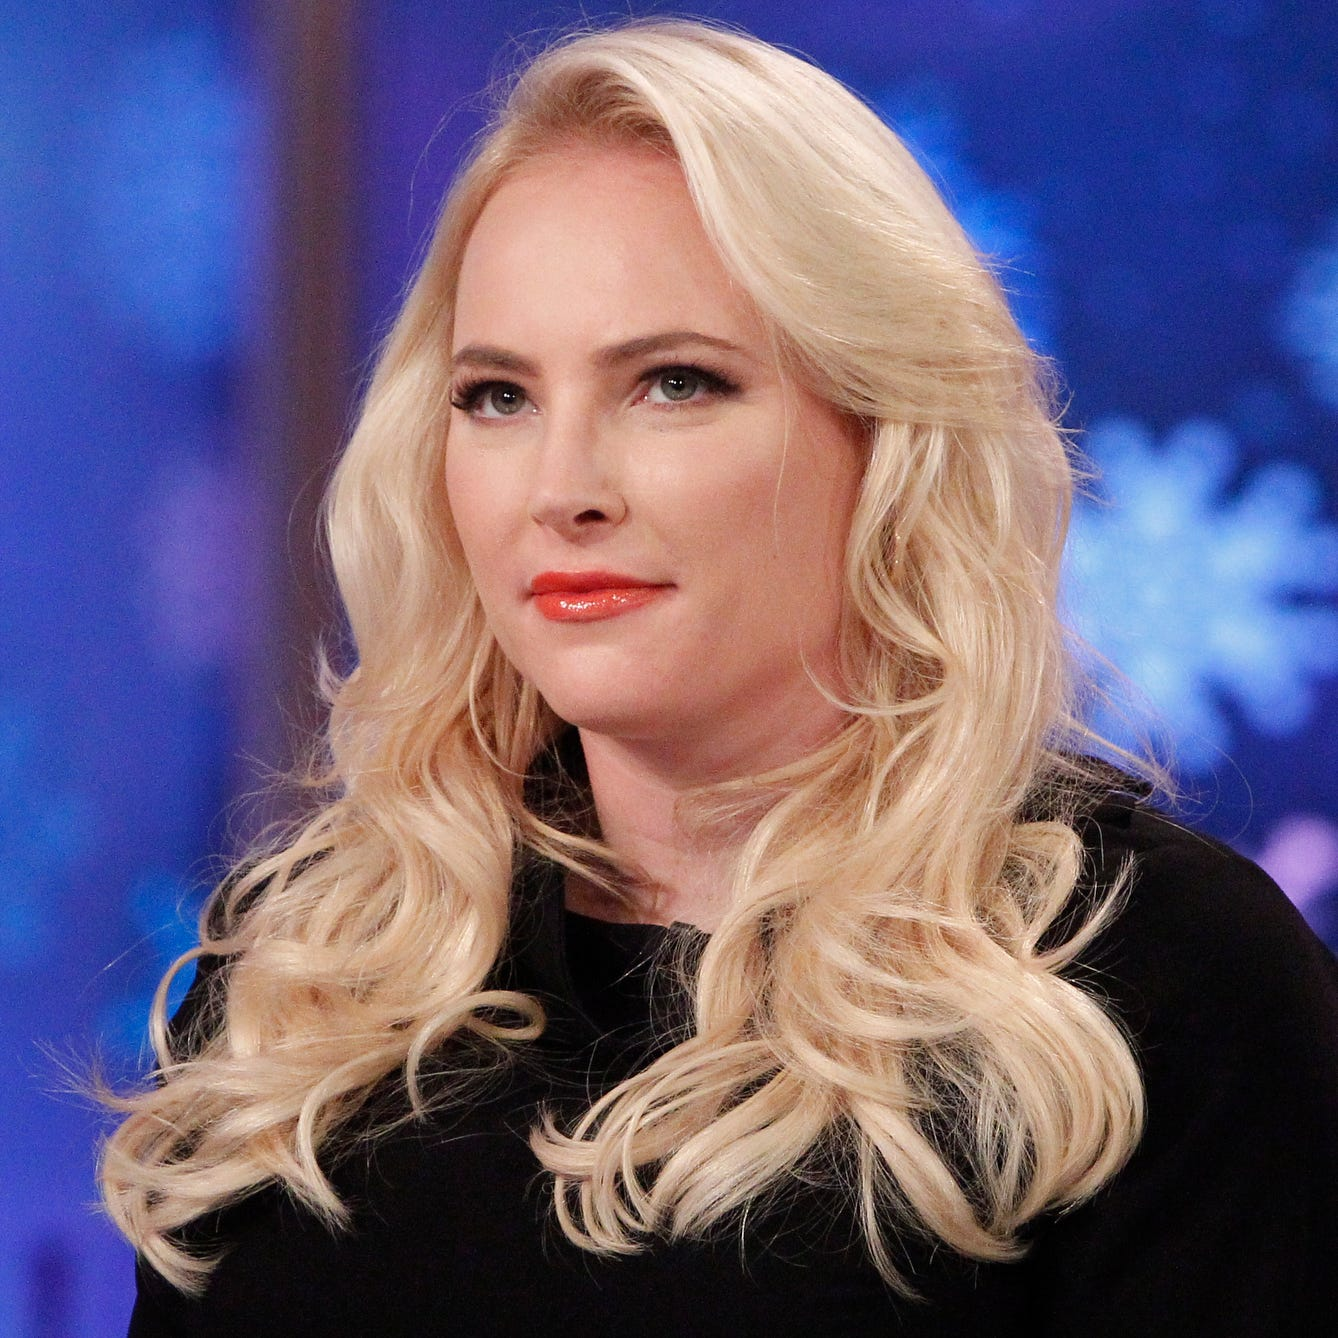 Meghan McCain spoils 'Game of Thrones' finale ending on 'The View'